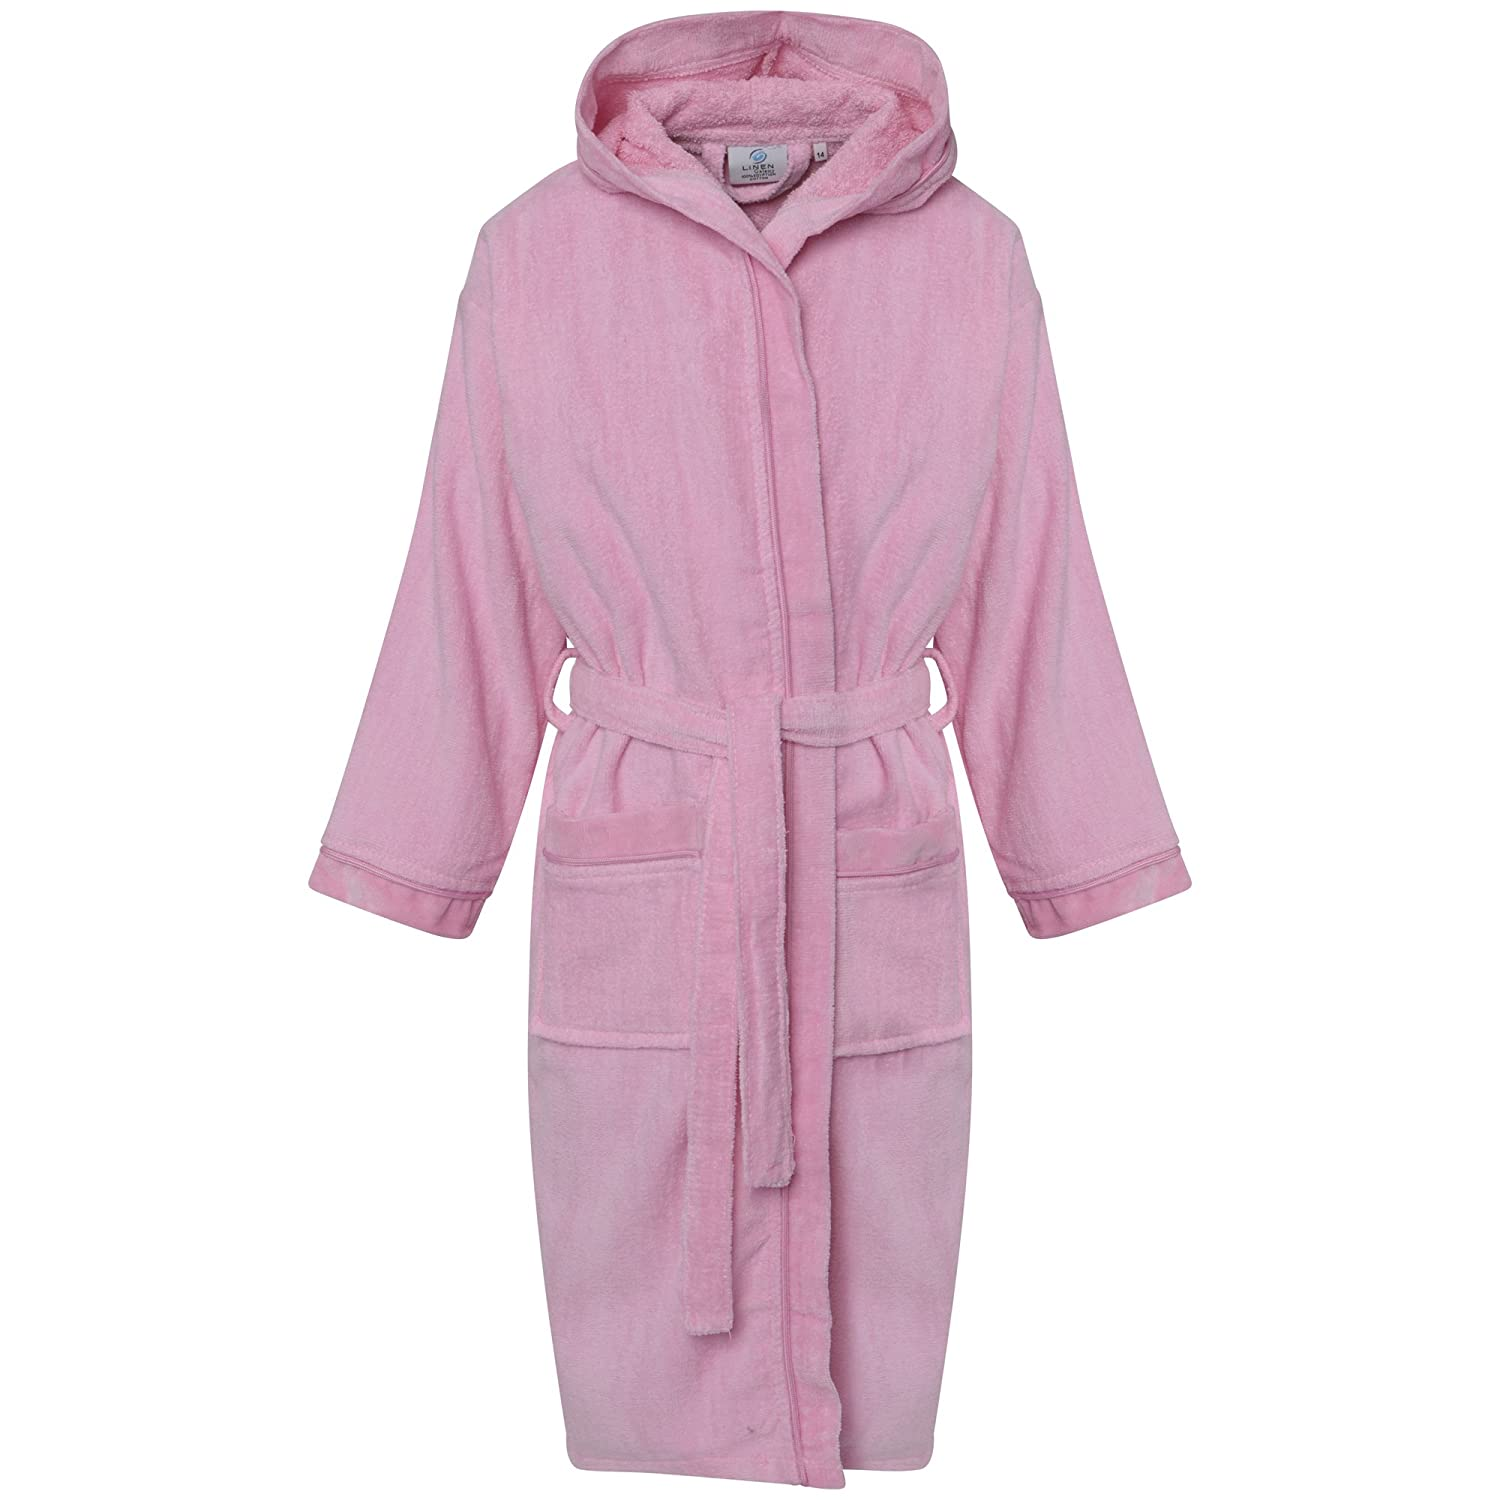 Kids Childrens 100/% Cotton Bathrobe Terry Towelling Hooded Bath Robe Gown 1-12